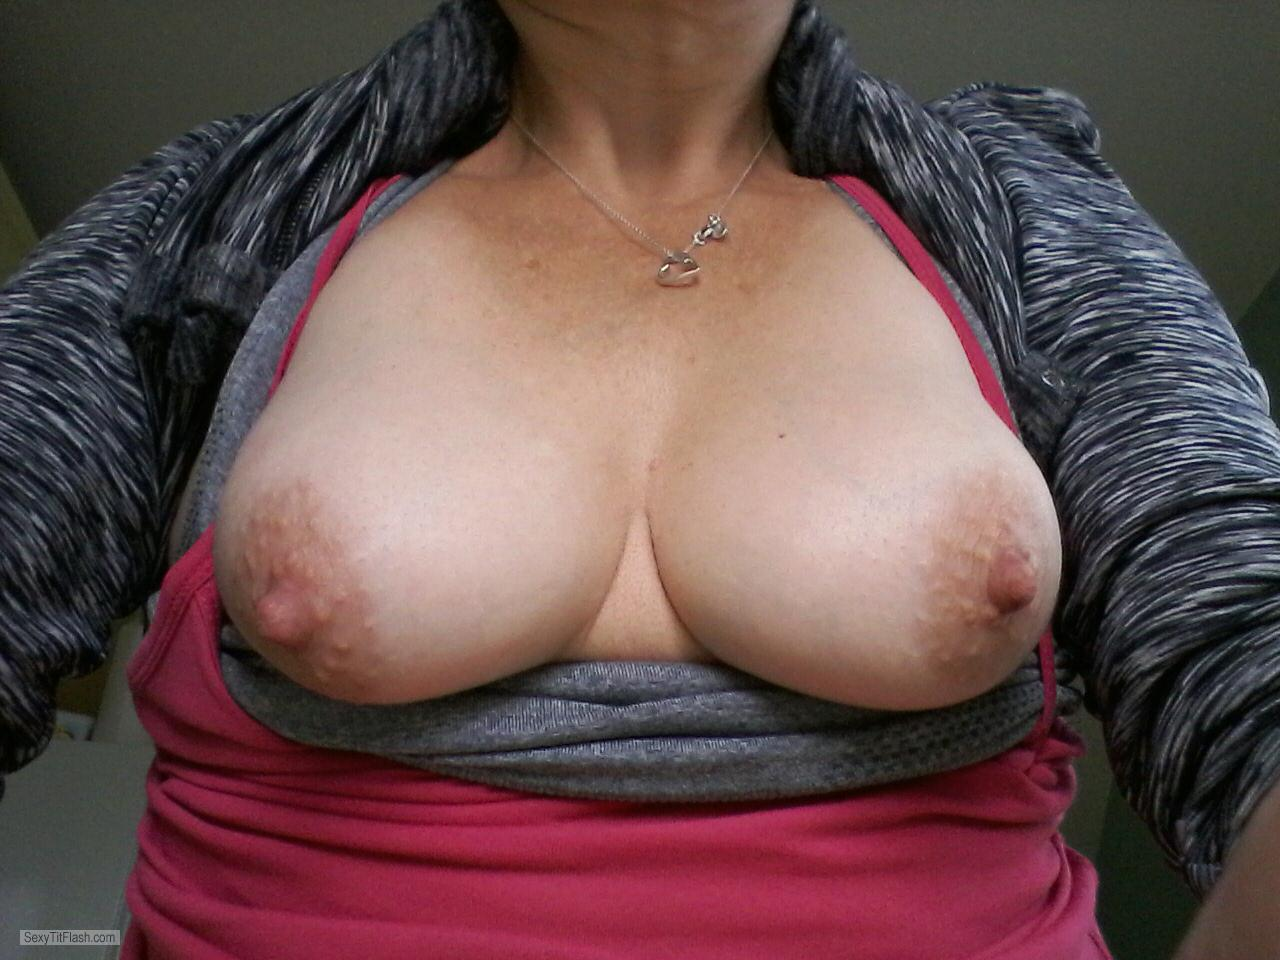 Tit Flash: My Small Tits (Selfie) - A Wife from United Kingdom